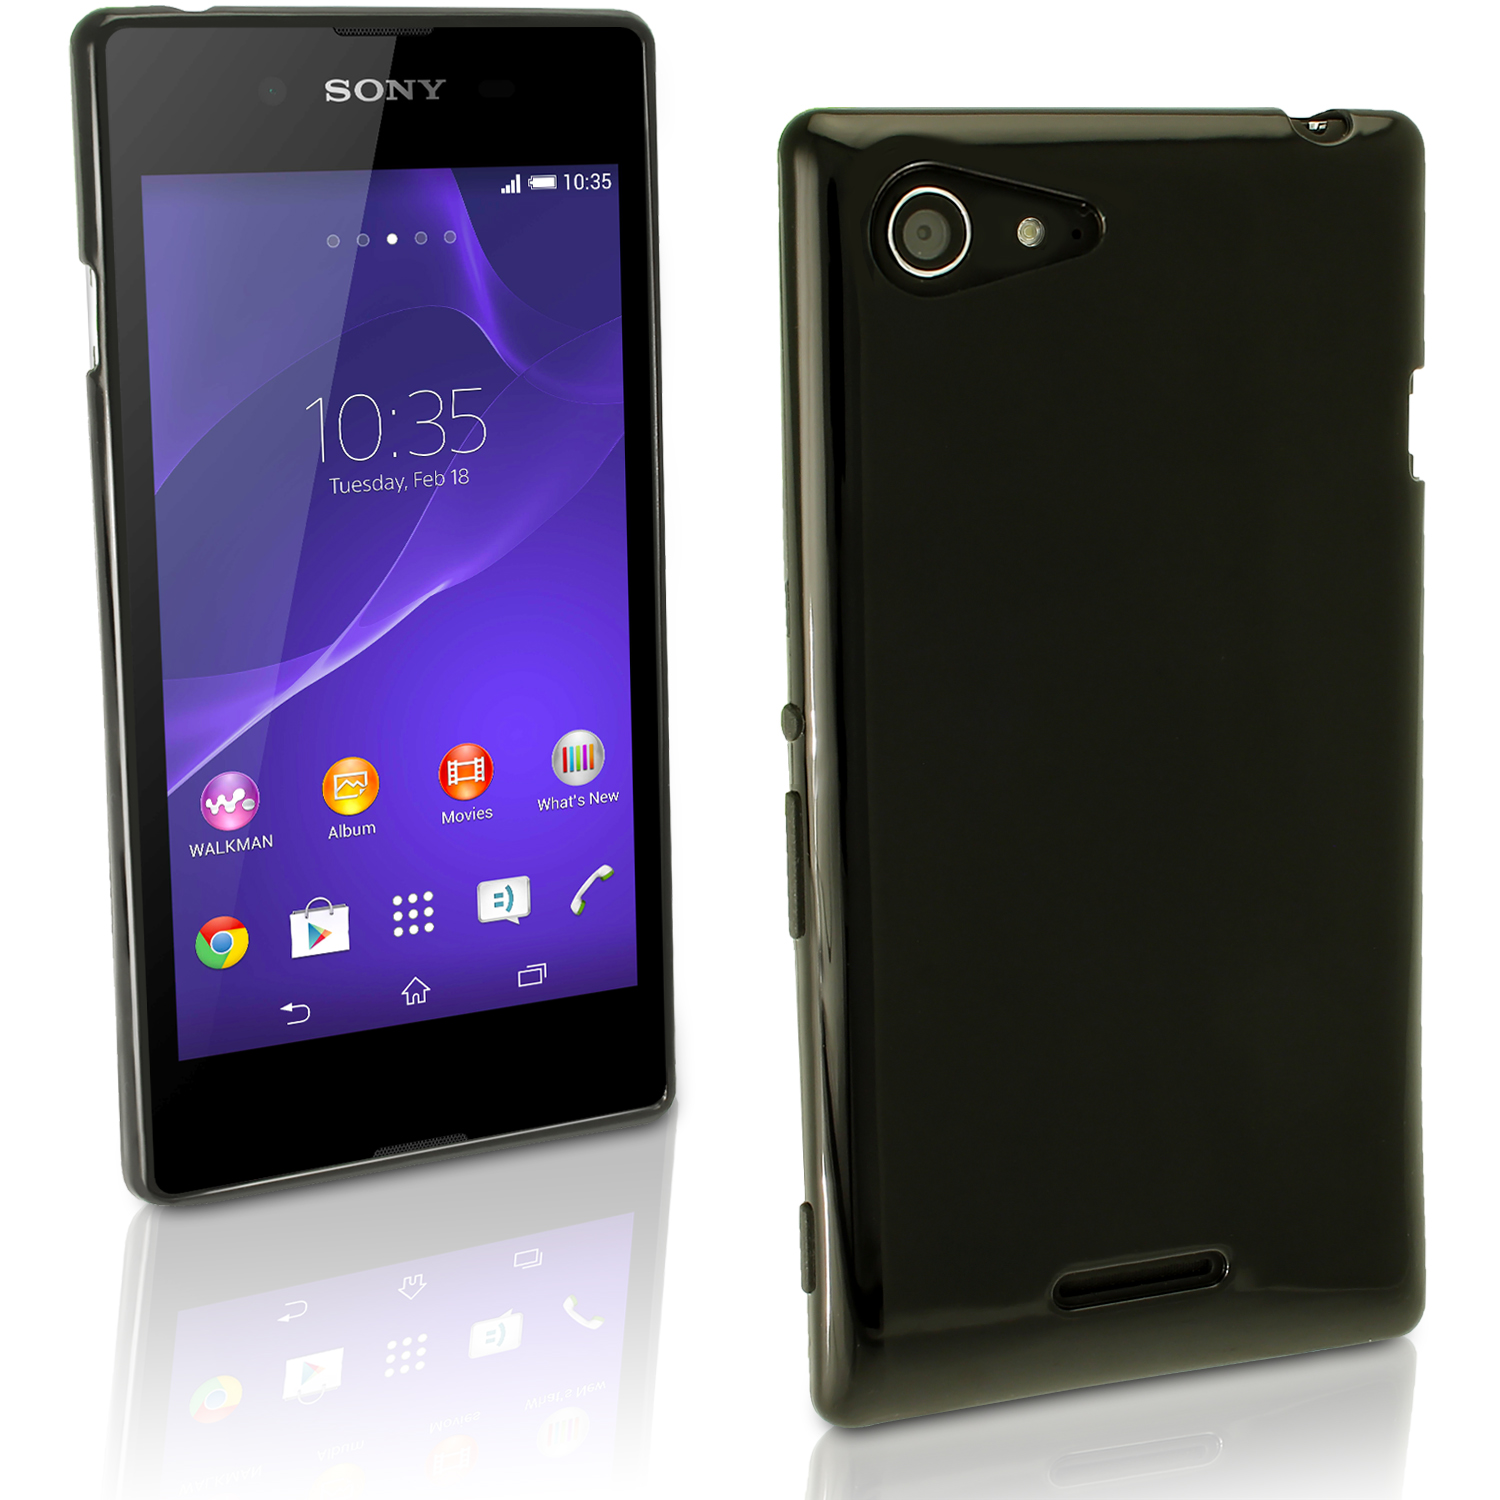 on sale 13a3f 2e994 Details about Glossy TPU Gel Case for Sony Xperia E3 D2203 D2206 Skin  Bumper Cover Screen Prot